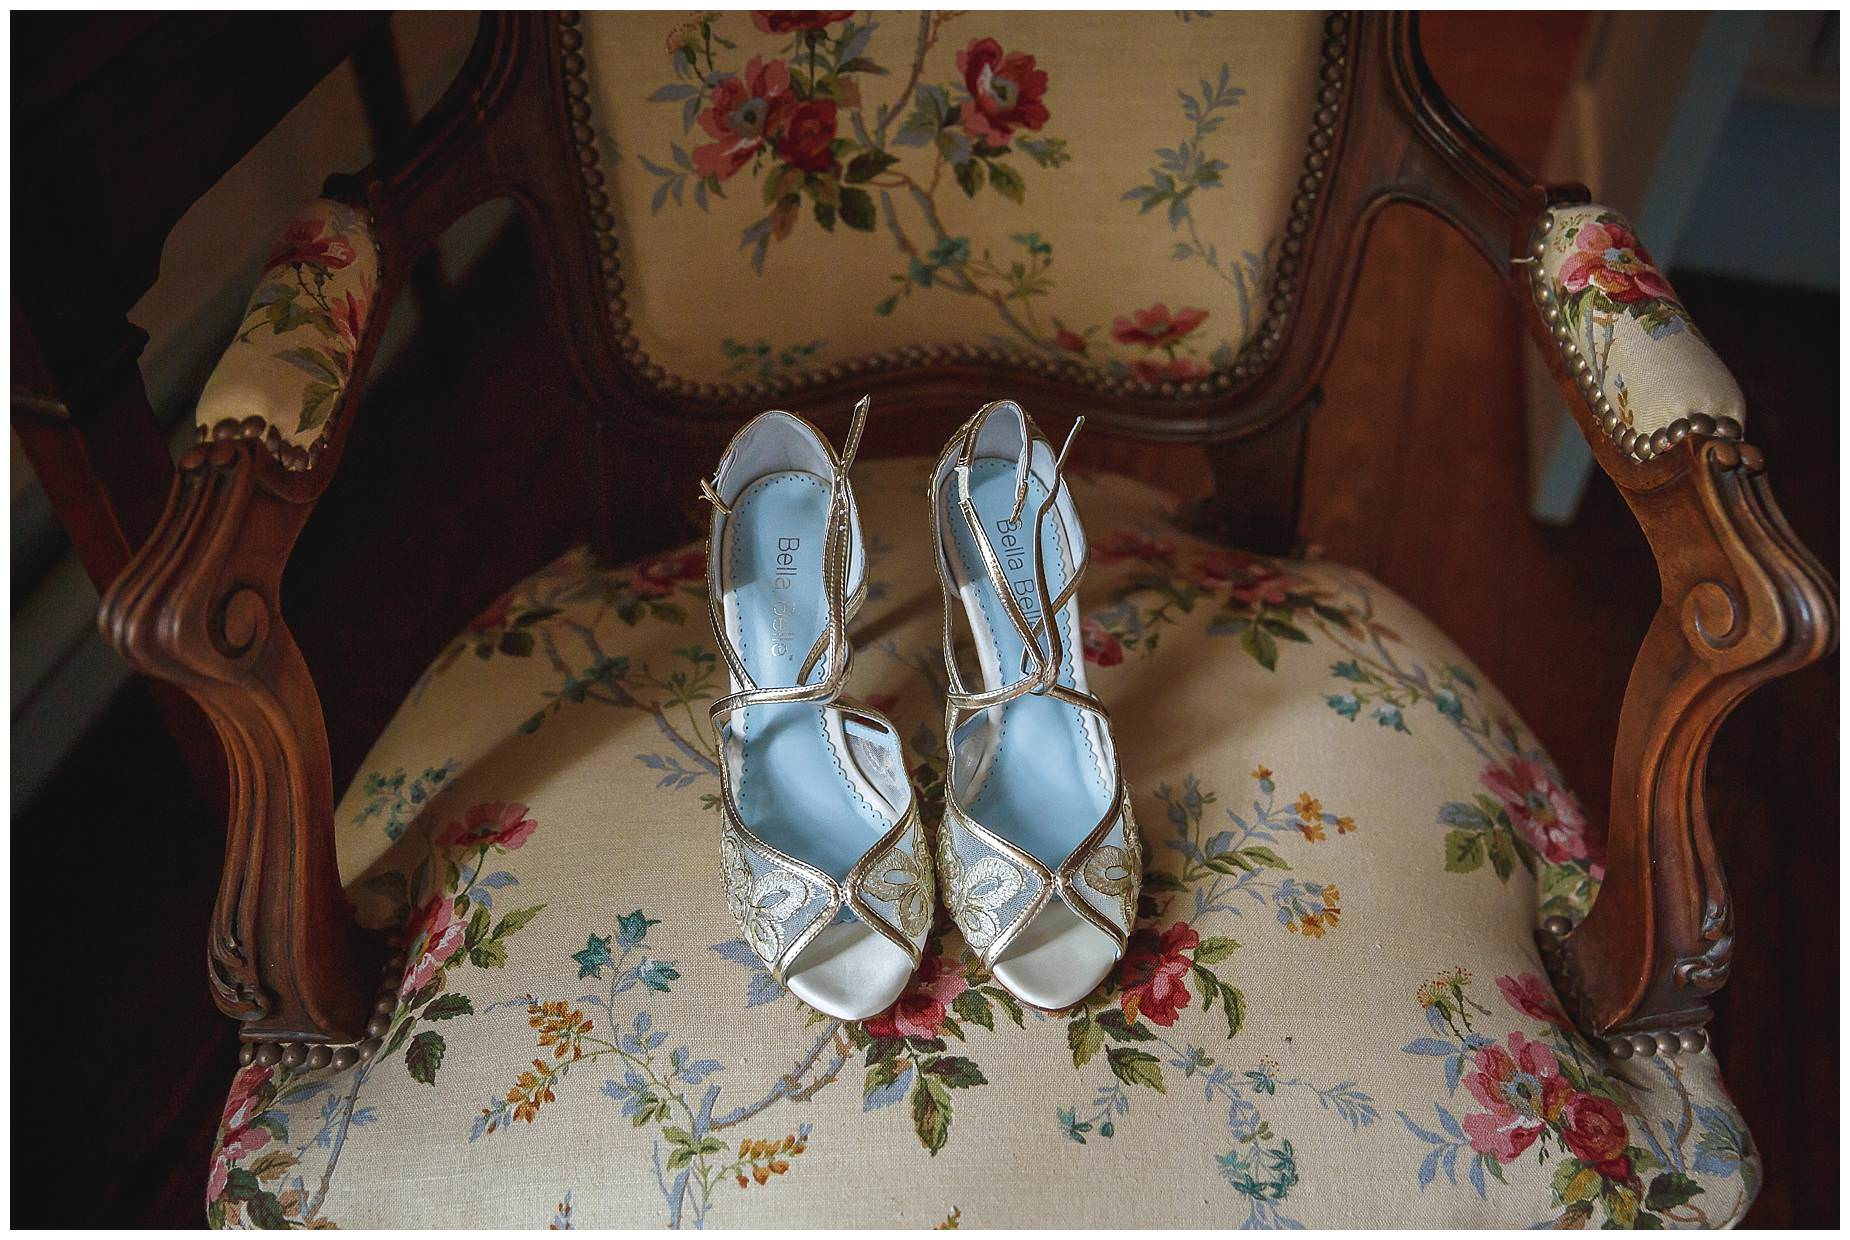 brides shoes on a chair